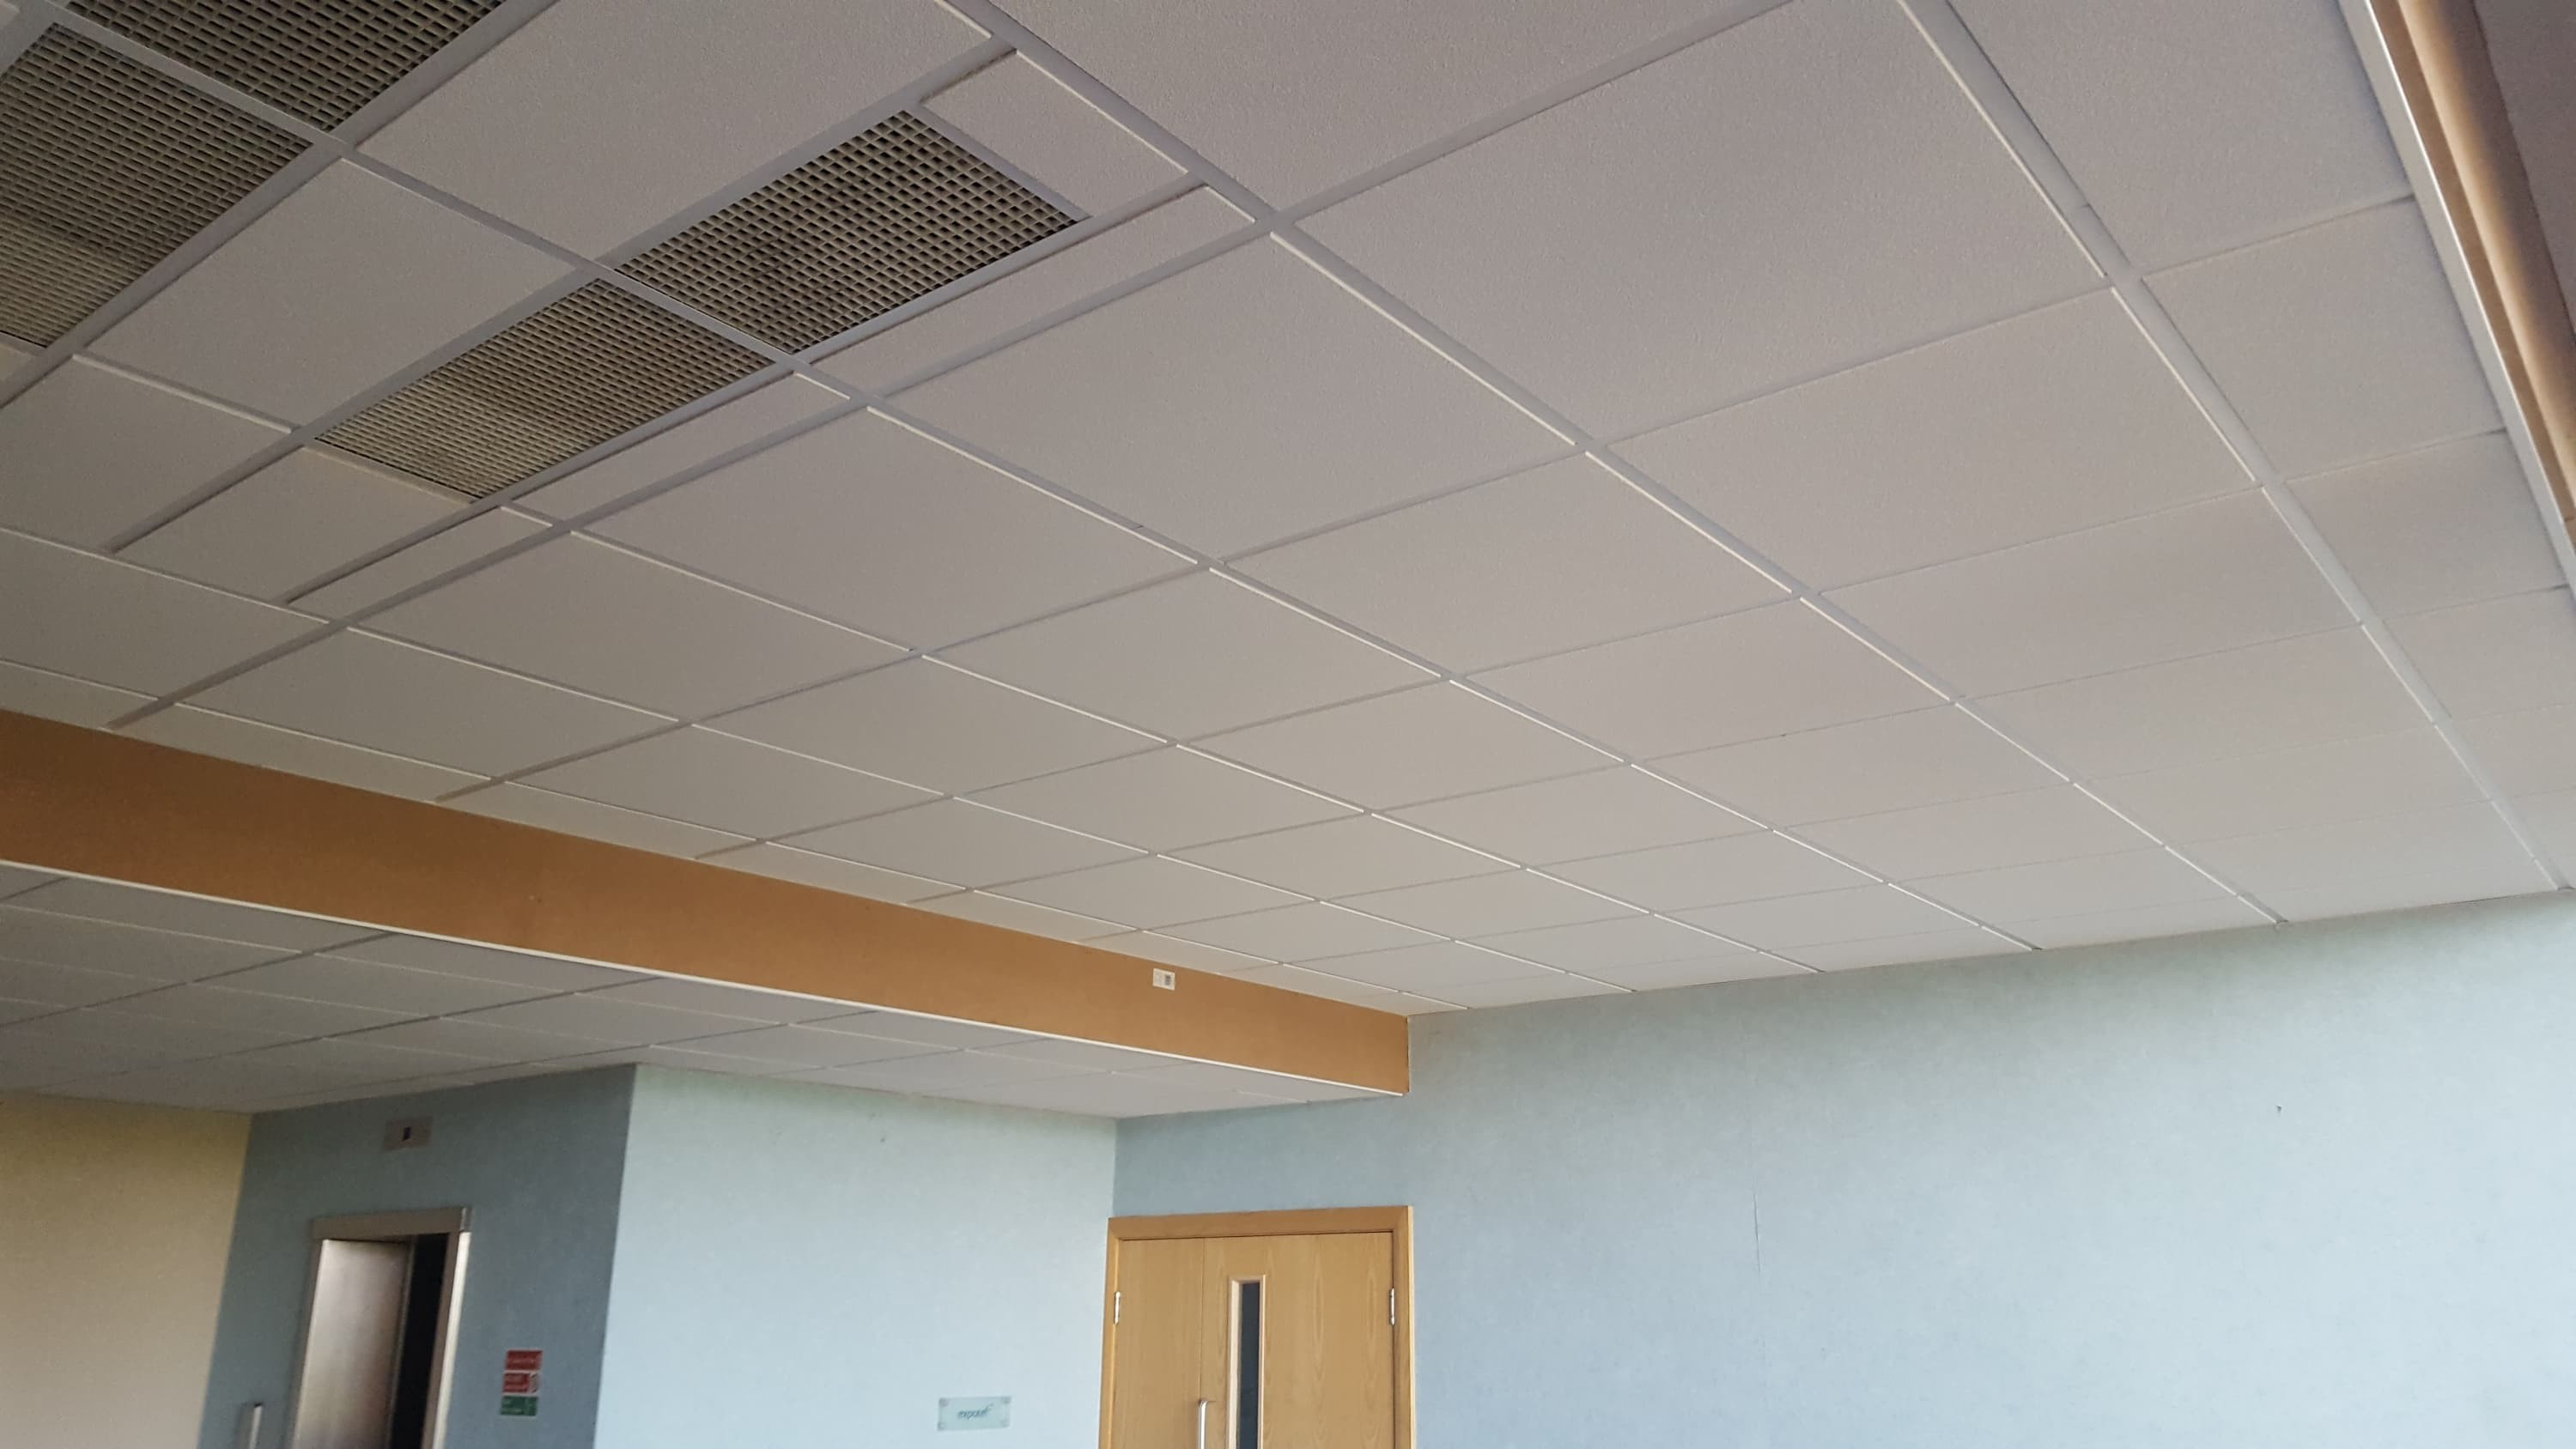 Armstrong moisture resistant ceiling tiles columbialabelsfo armstrong moisture resistant ceiling tiles best ceiling 2018 dailygadgetfo Images